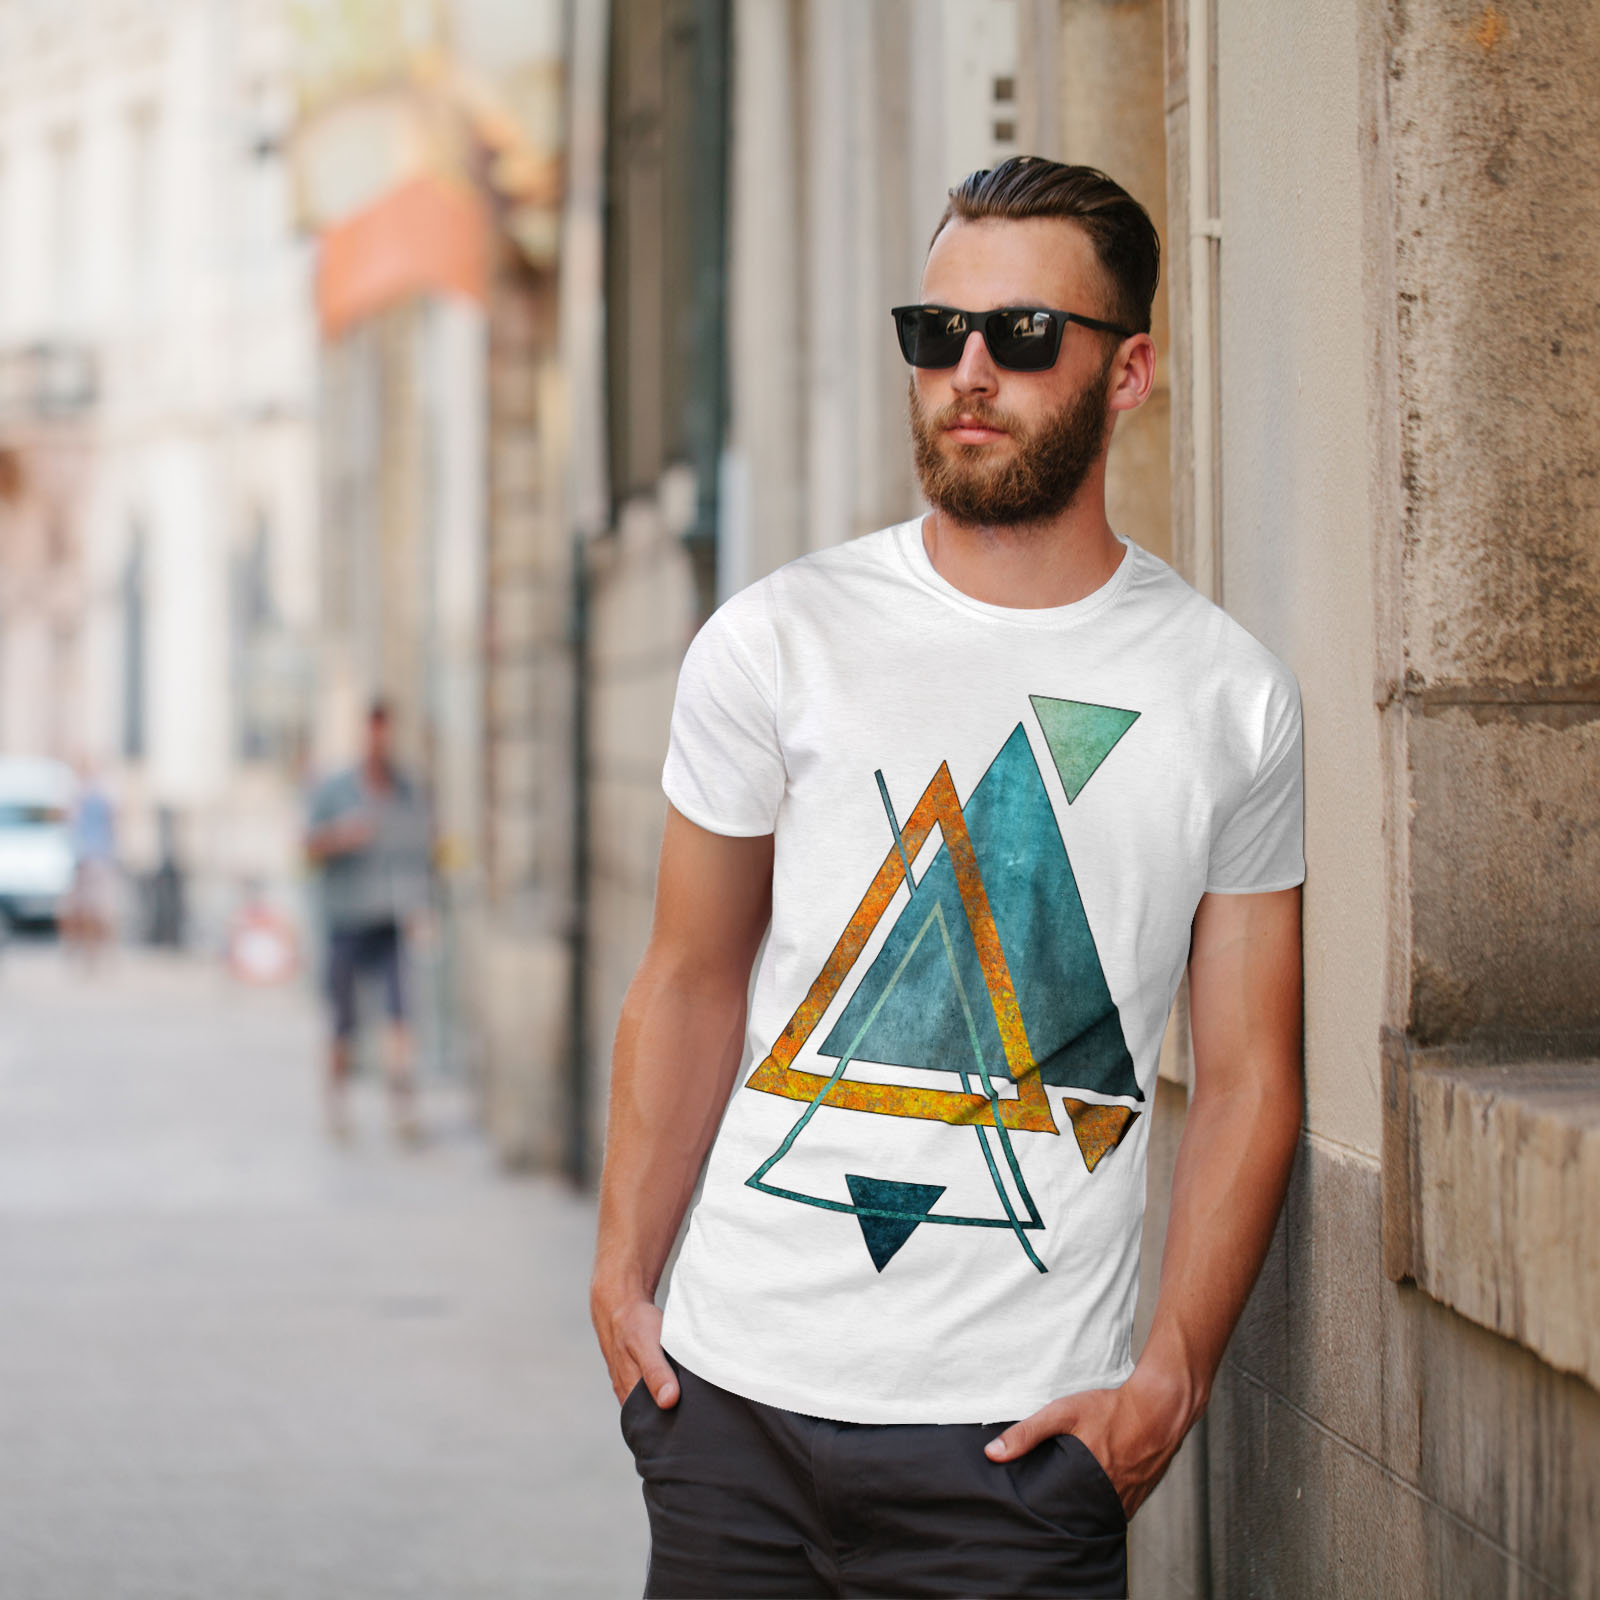 Wellcoda-Abstract-Triangle-T-shirt-homme-forme-design-graphique-imprime-Tee miniature 11